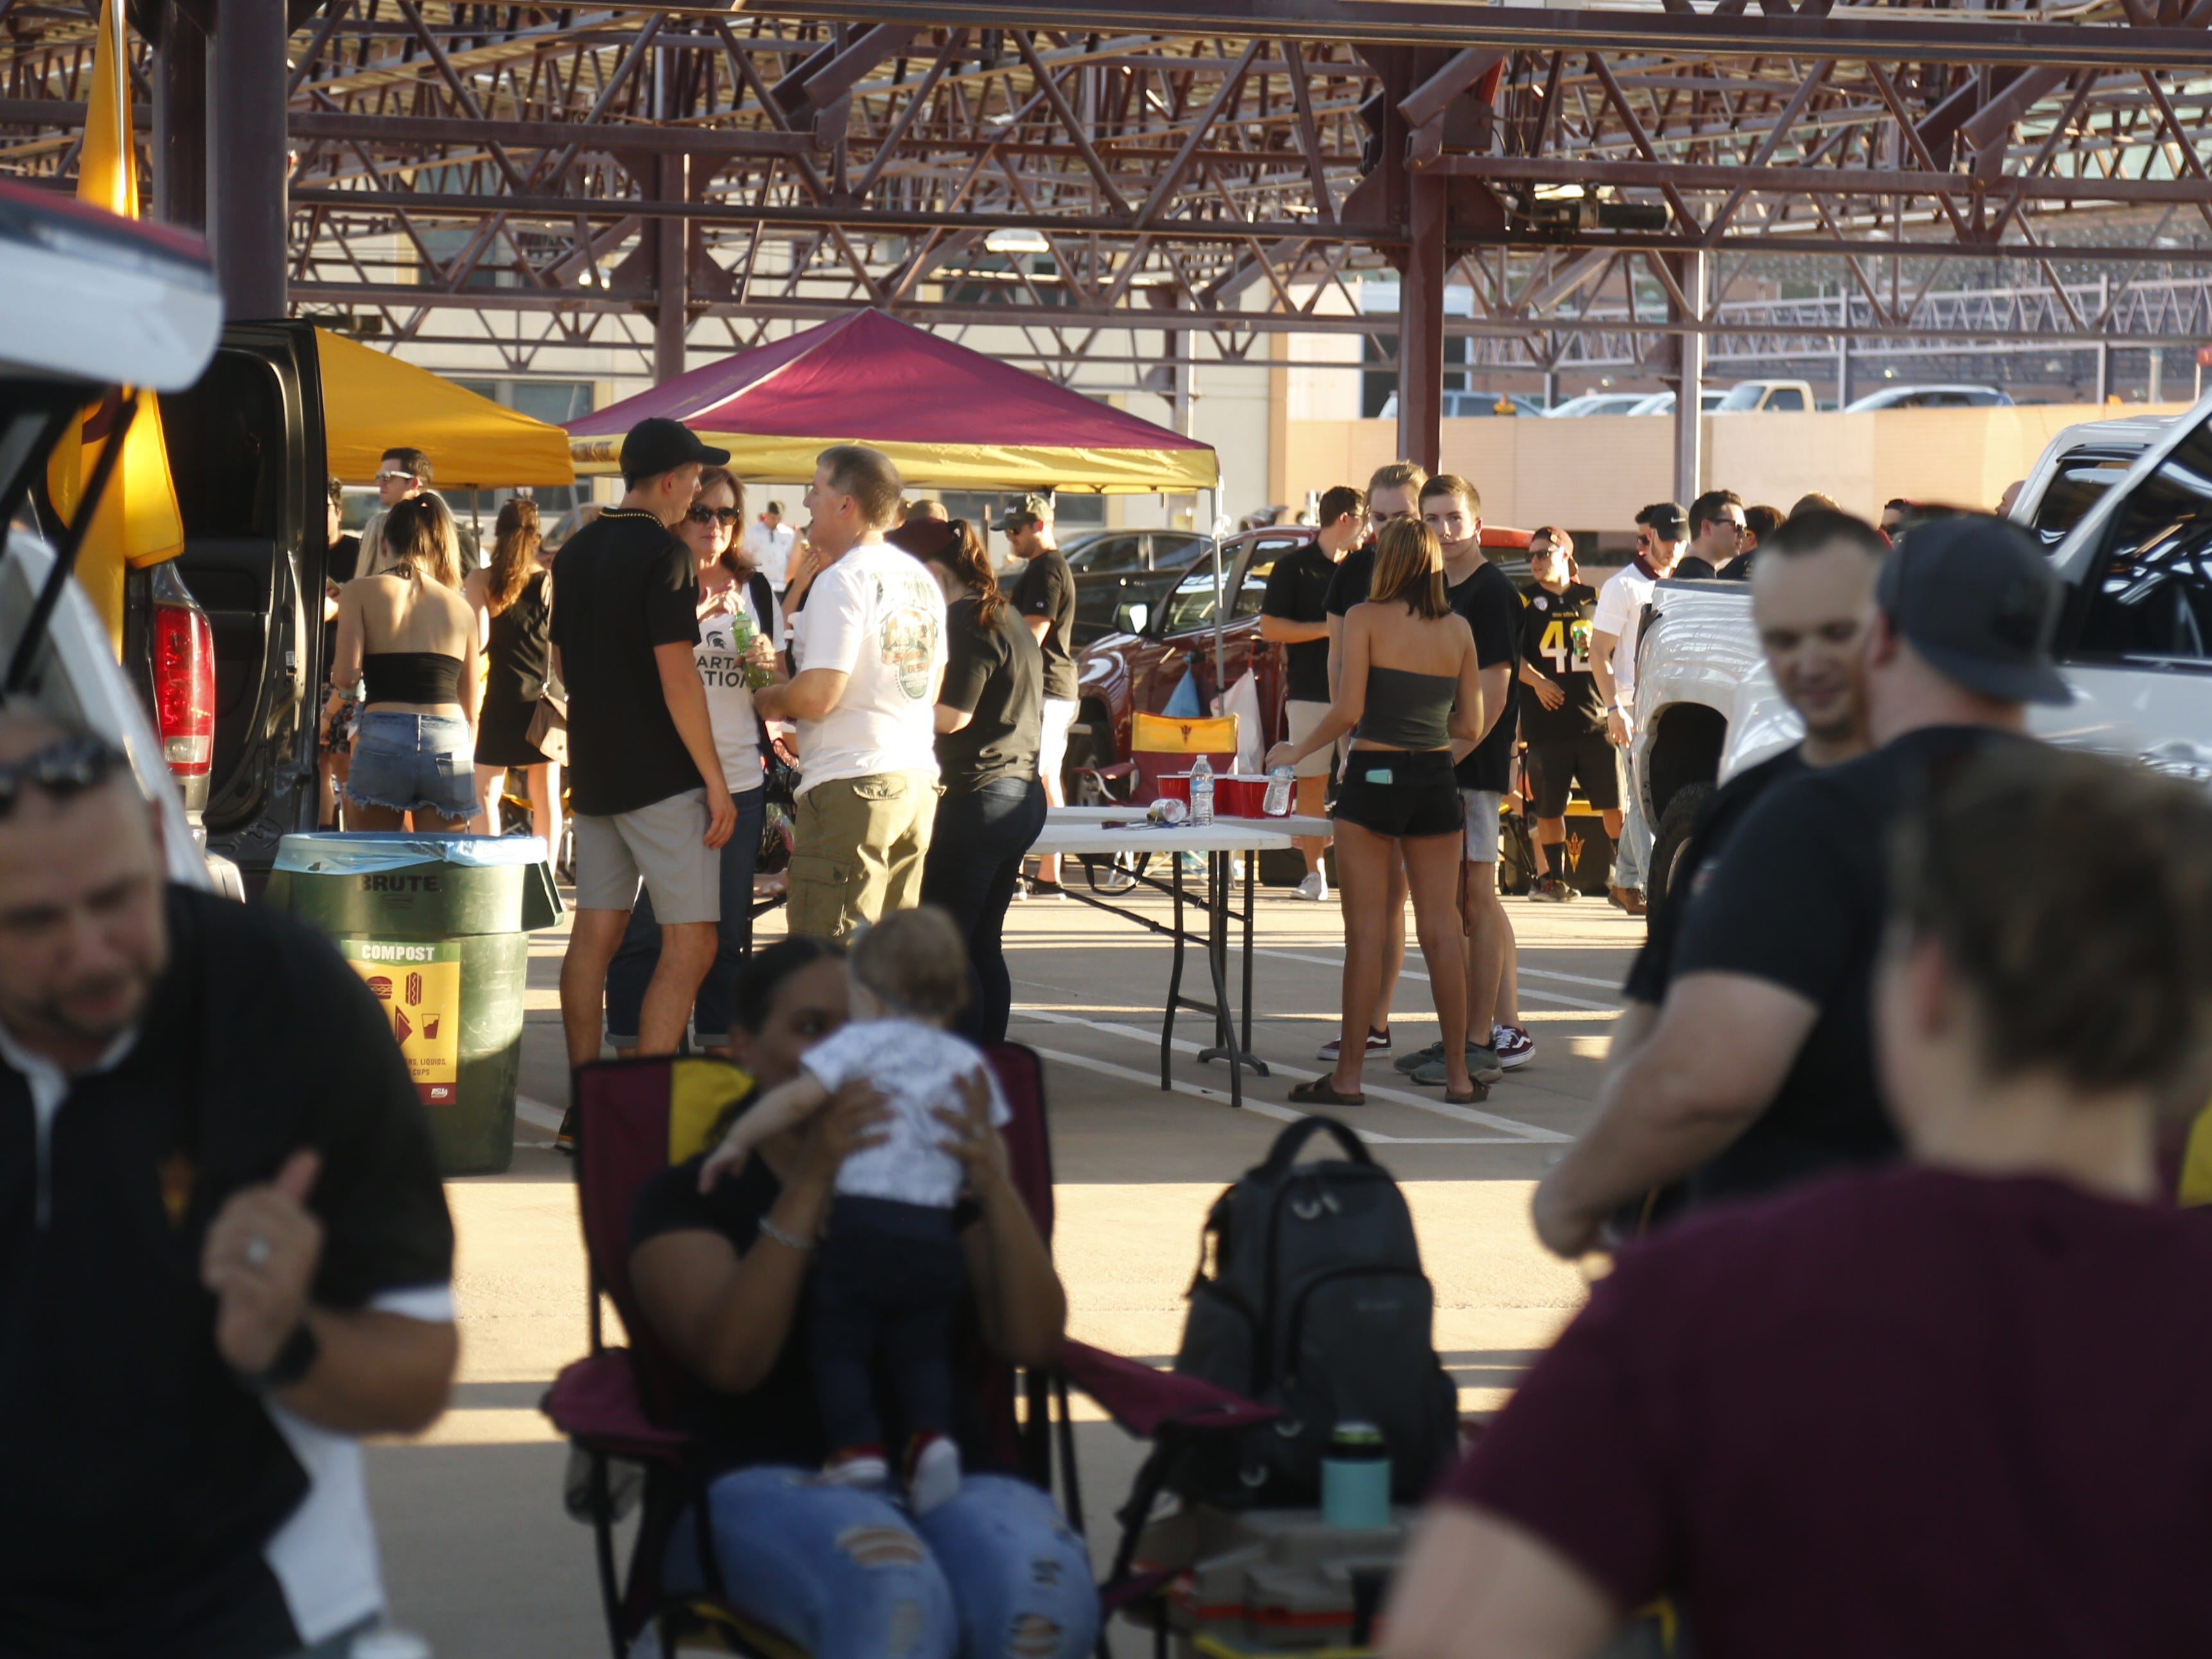 ASU fans take over the top of the Stadium Structure parking garage before an ASU game against Michigan State at Sun Devil Stadium in Tempe, Ariz. on Sept. 8, 2018.